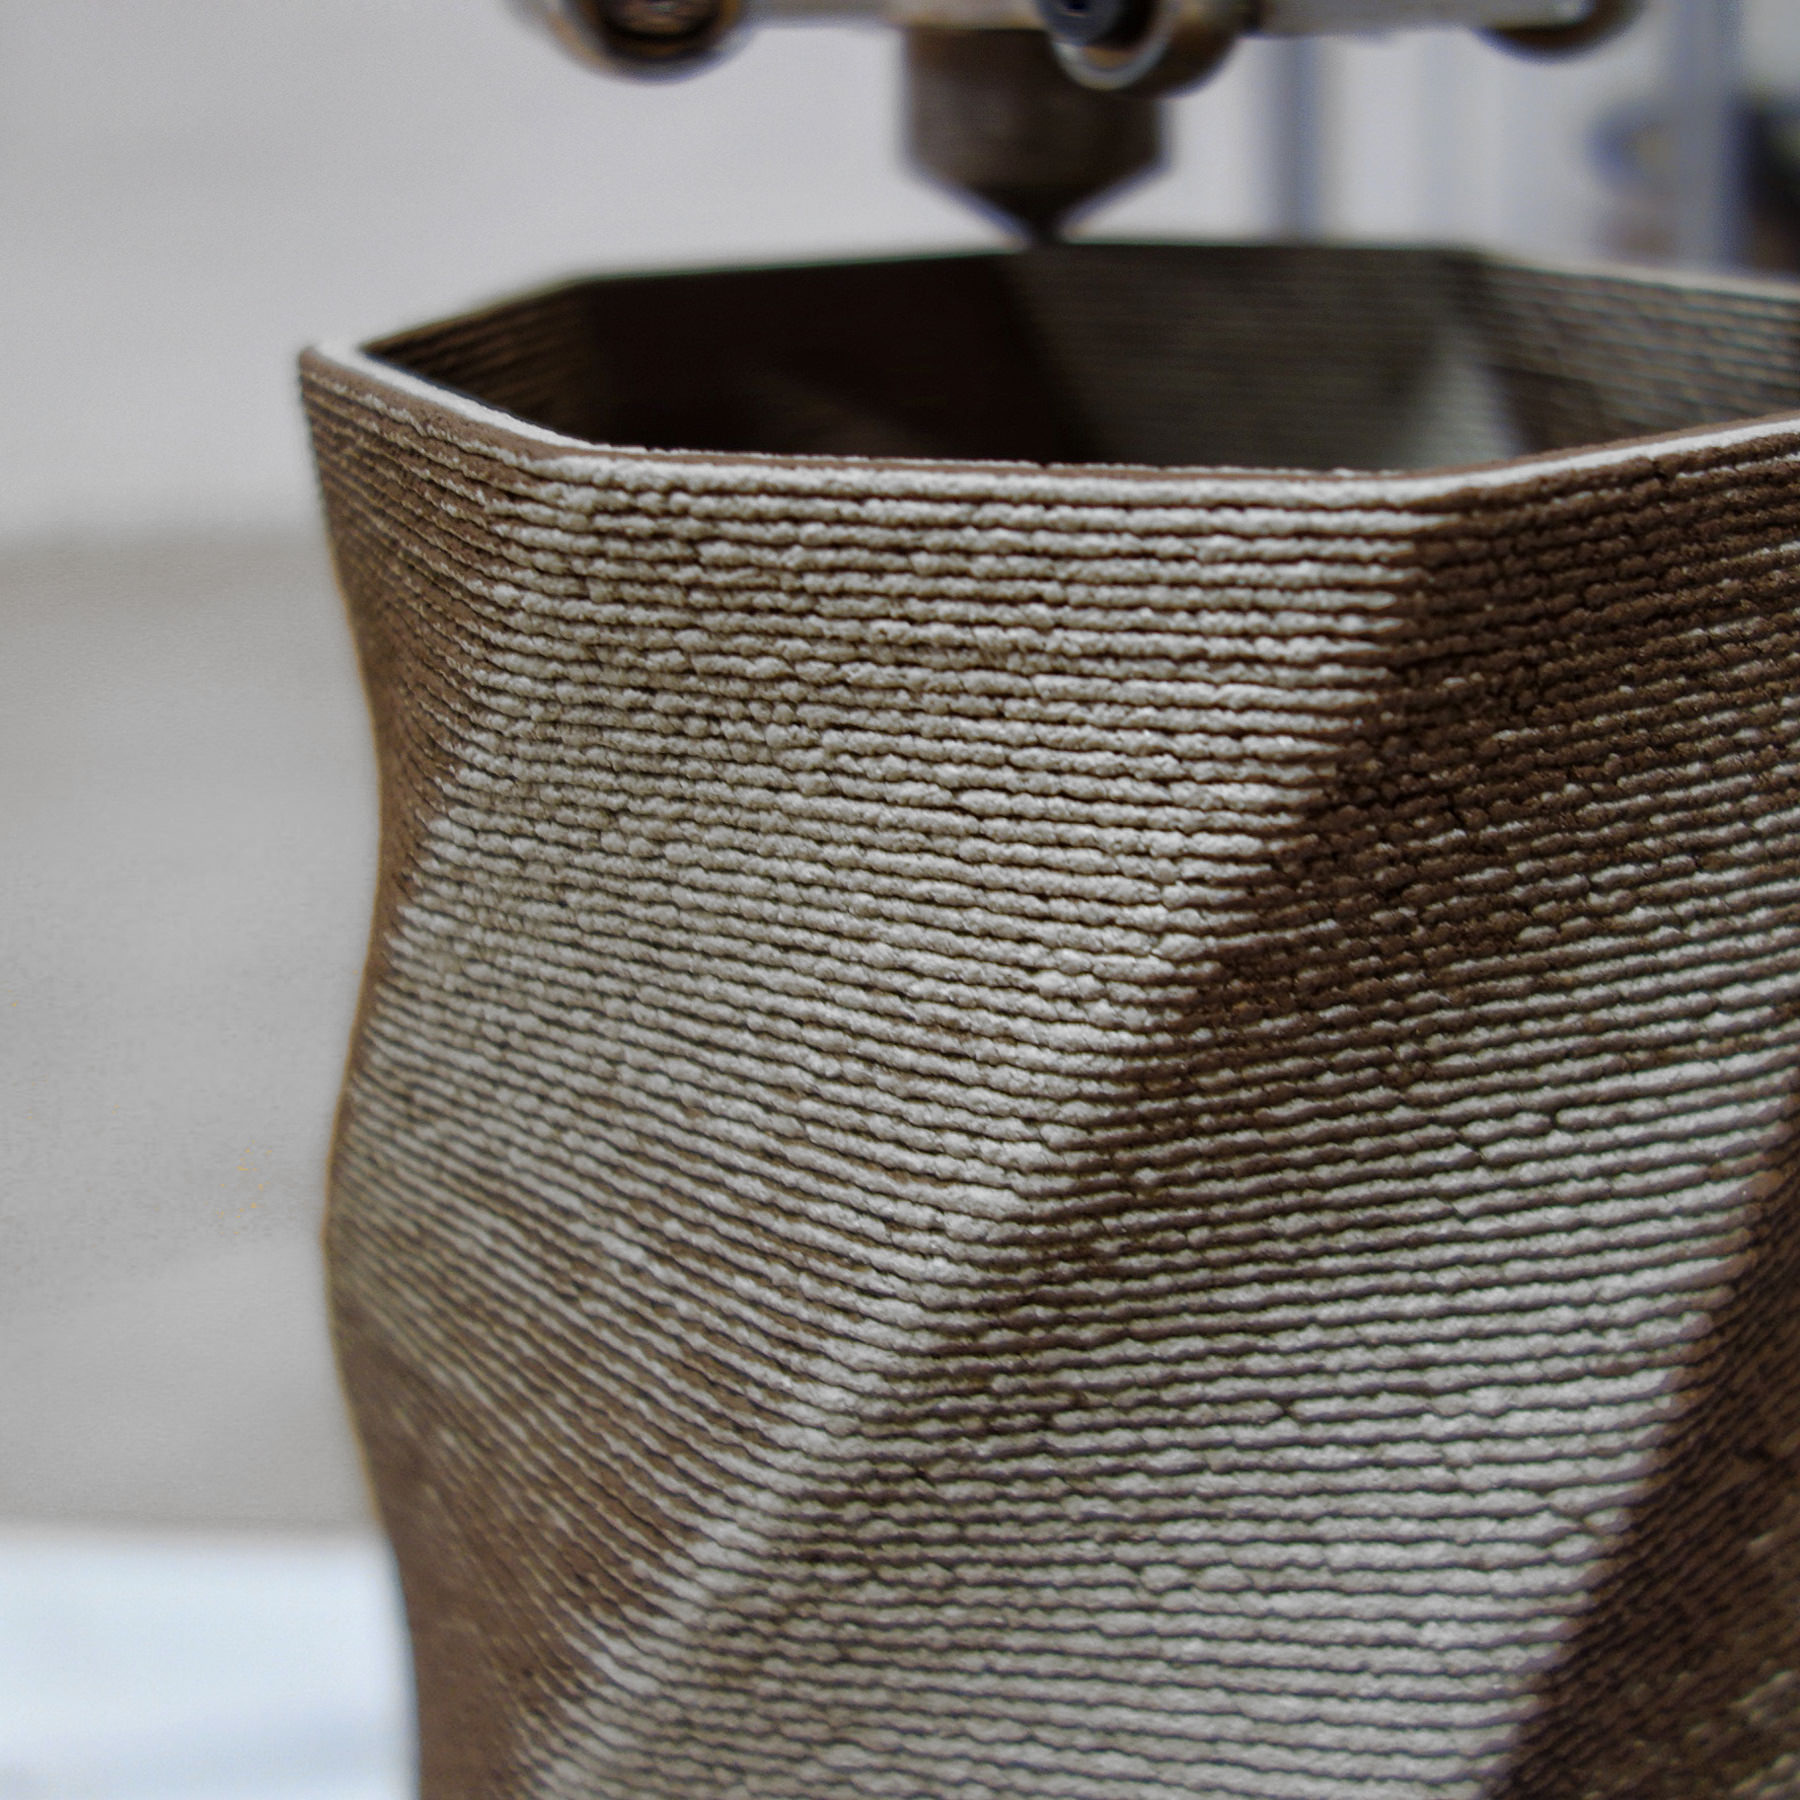 printed ceramic | www.bold-design.fr